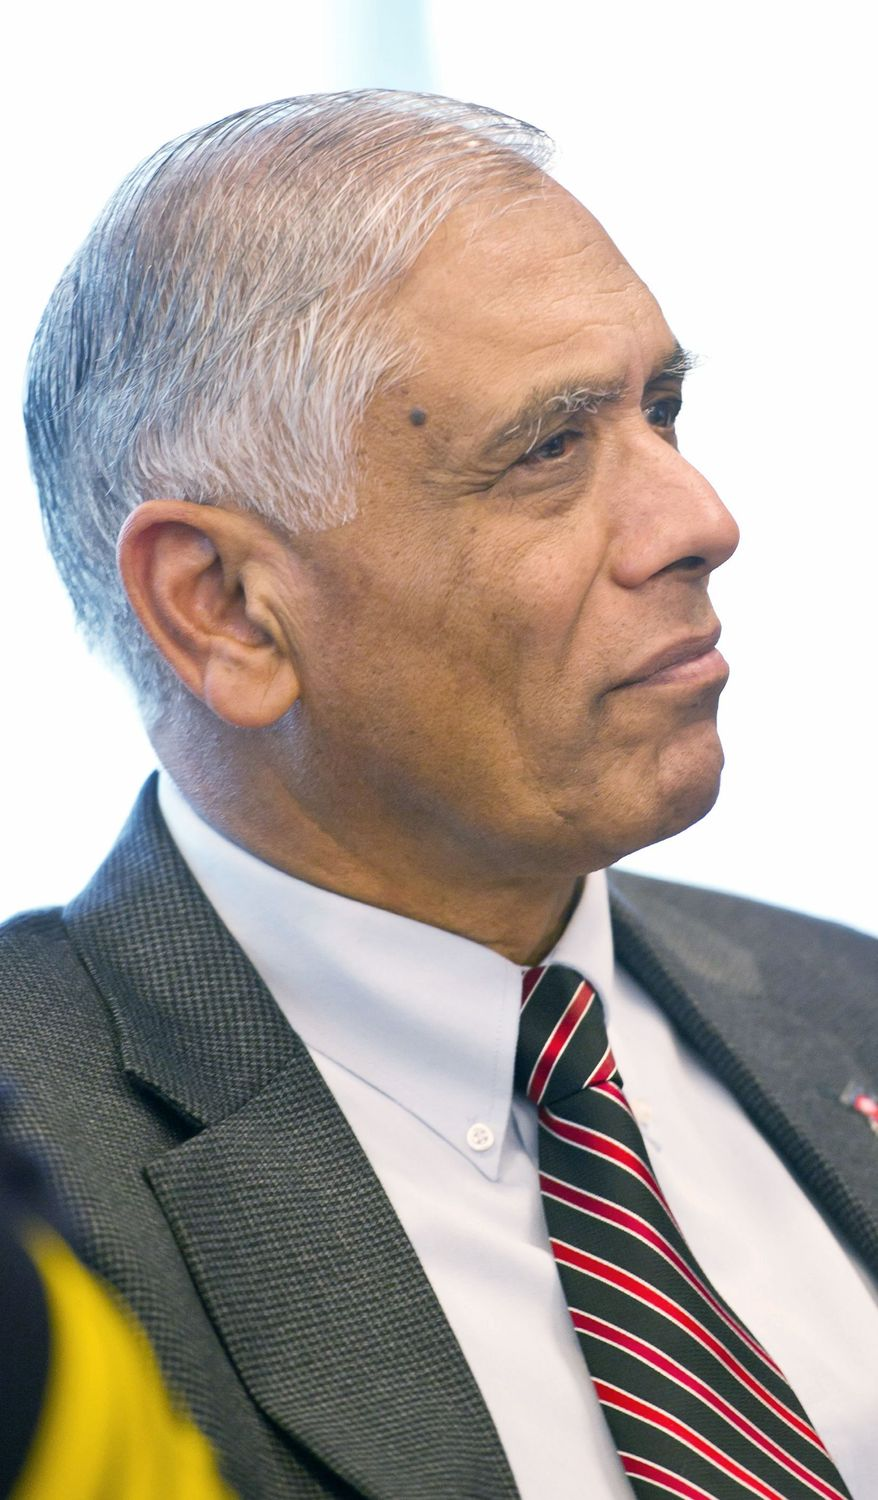 Mohammad Akhter, director of the D.C. Department of Health, is stepping down on Tuesday to work on the local implementation of the federal health reform law. (Andrew Harnik/The Washington Times)